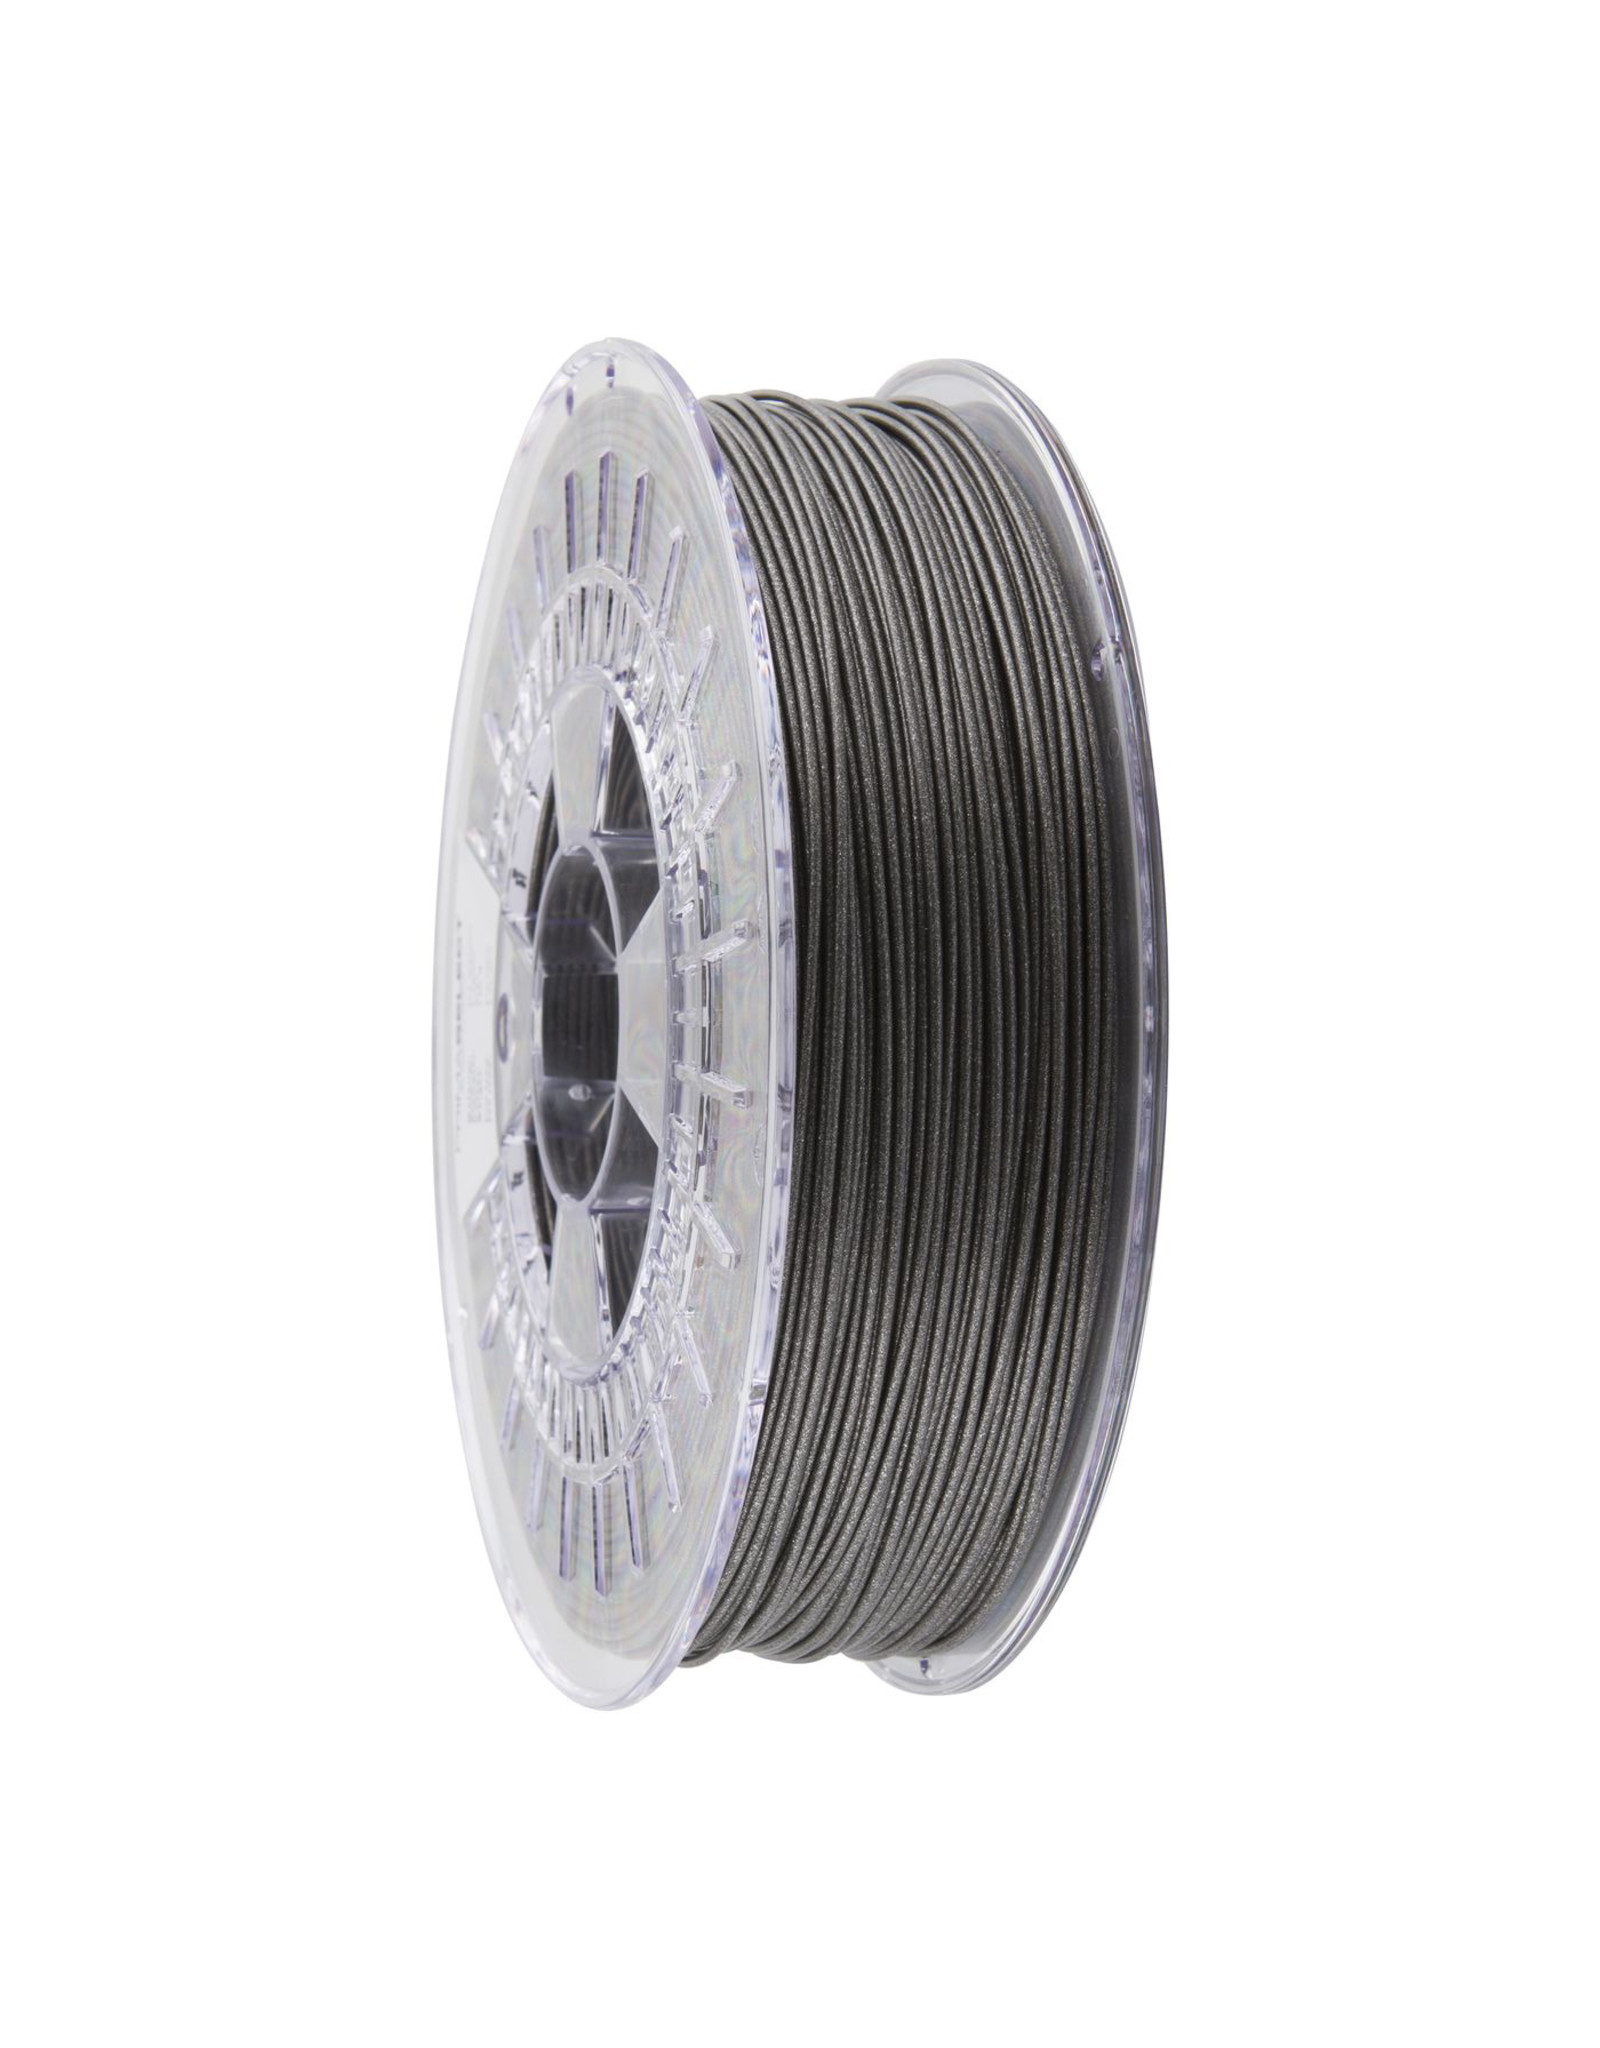 Prima PrimaSelect PLA 1.75mm - 750gr Metallic grijs